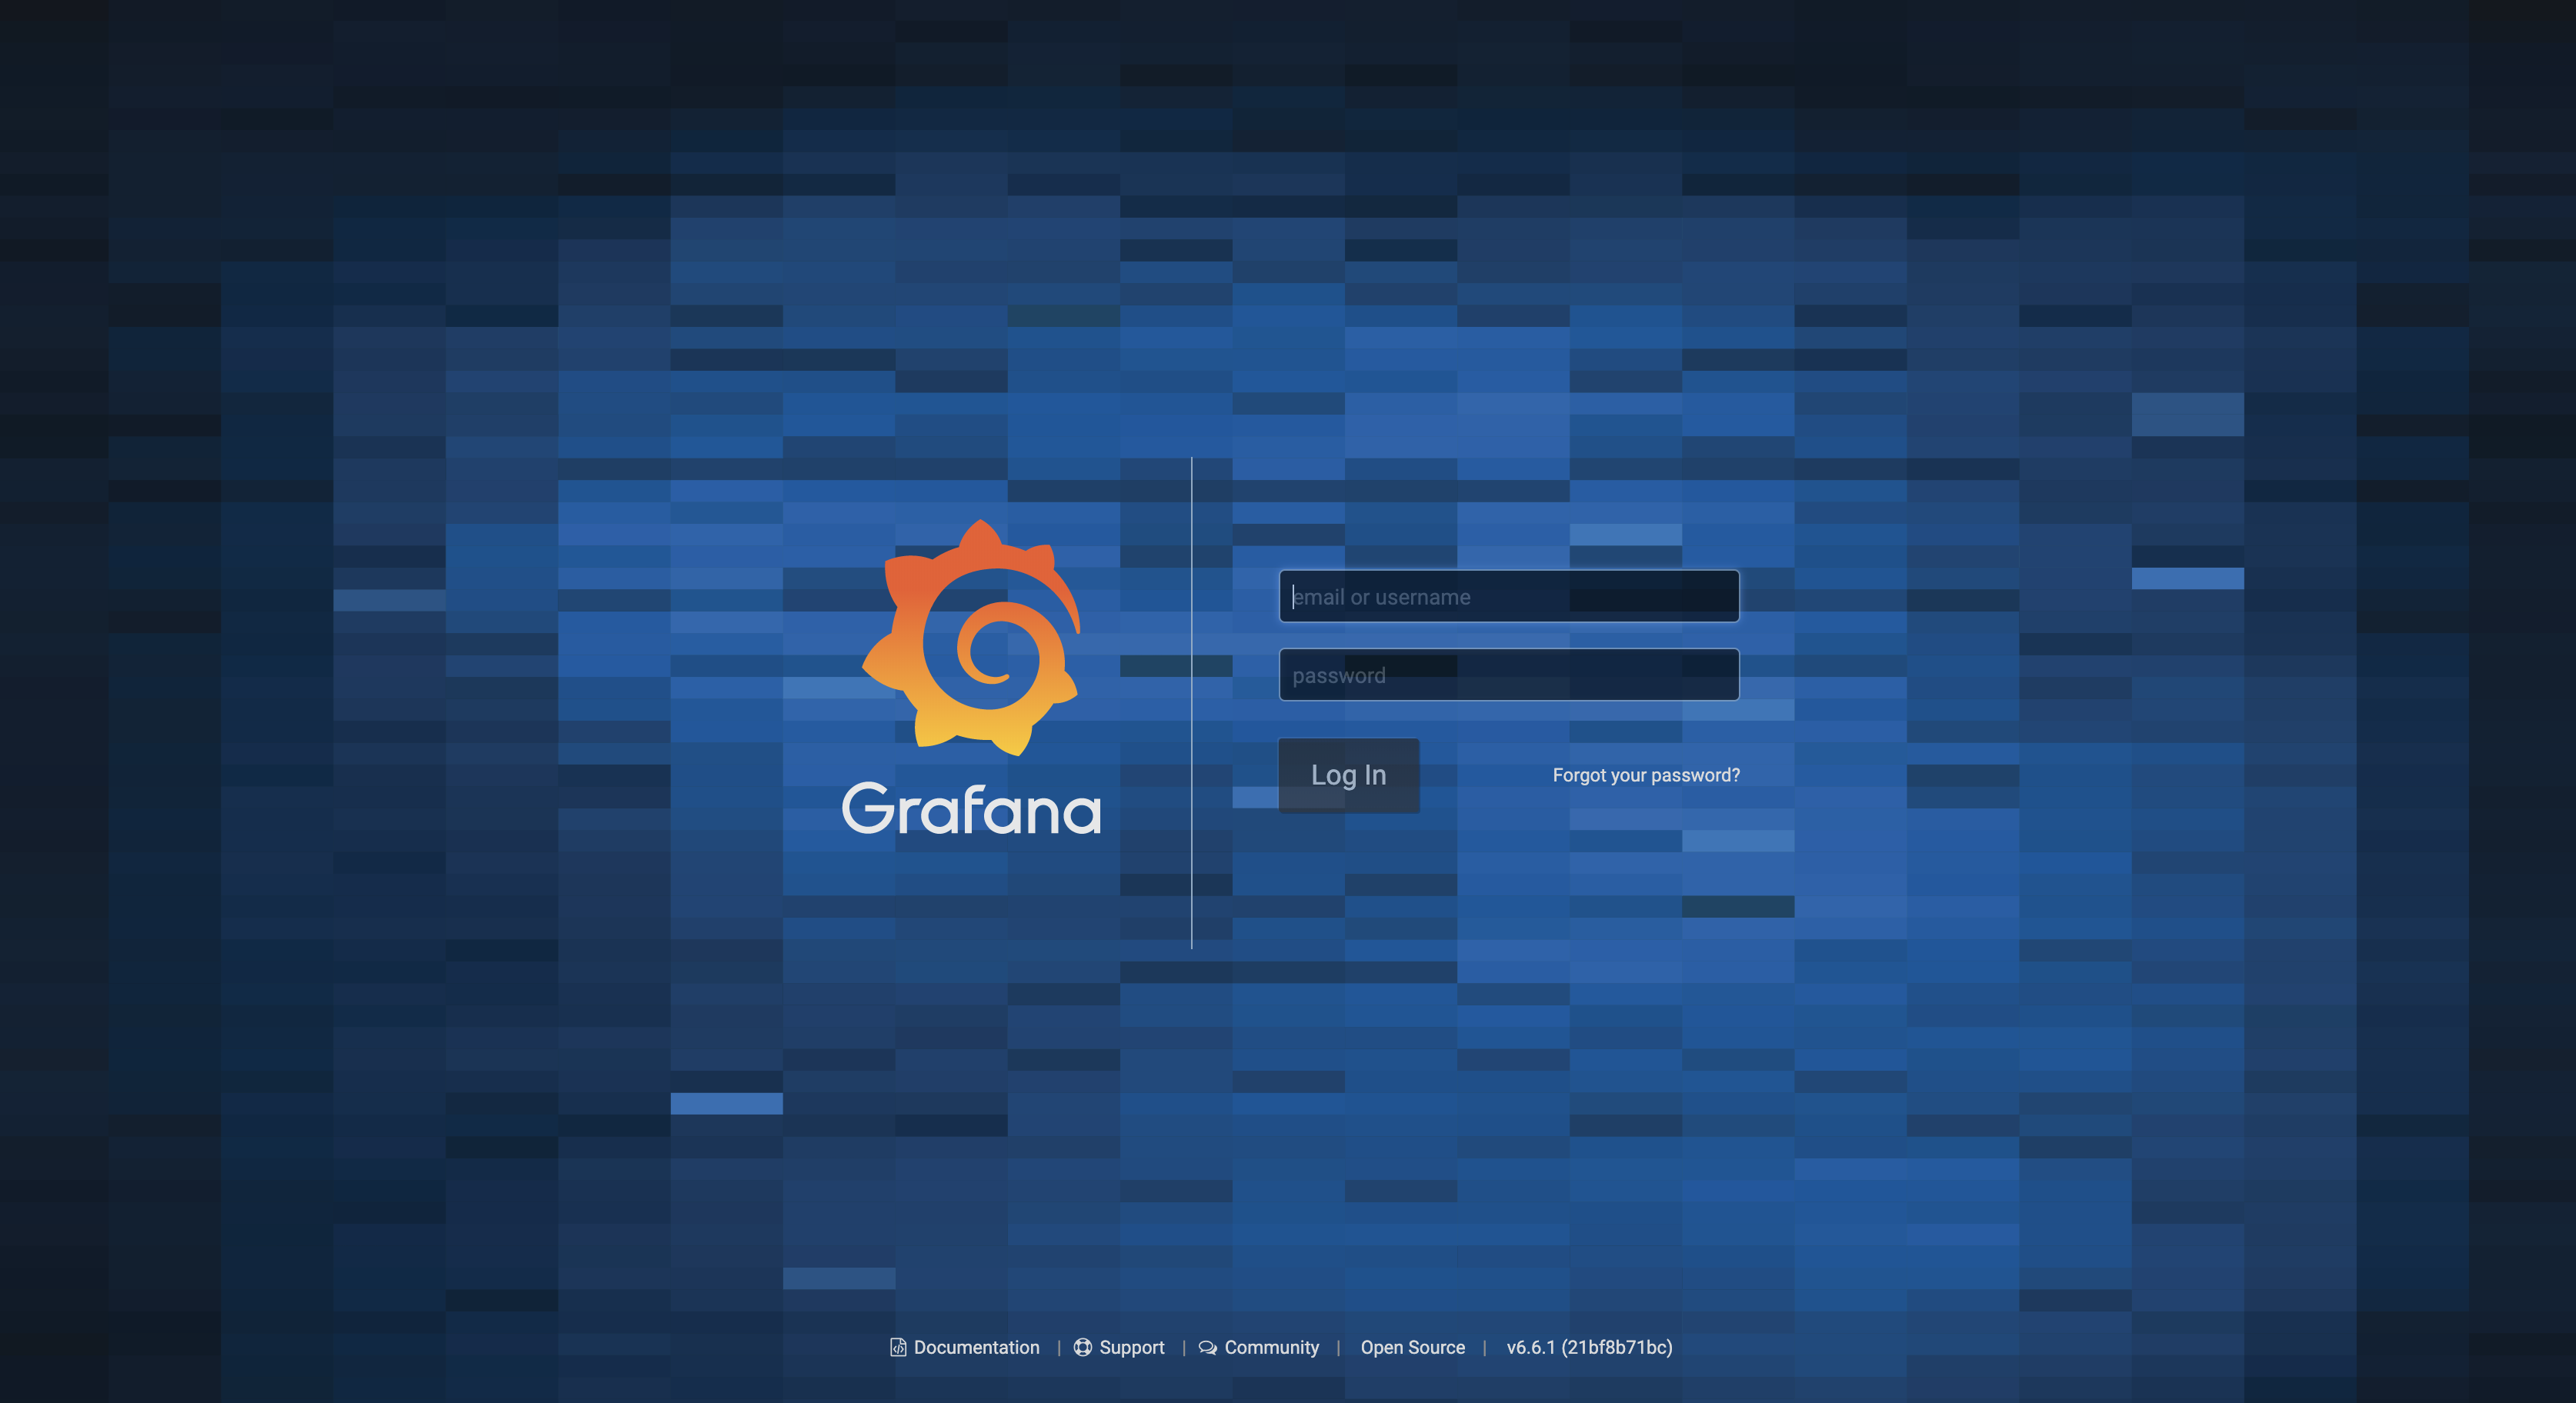 Install Grafana on Raspberry PI